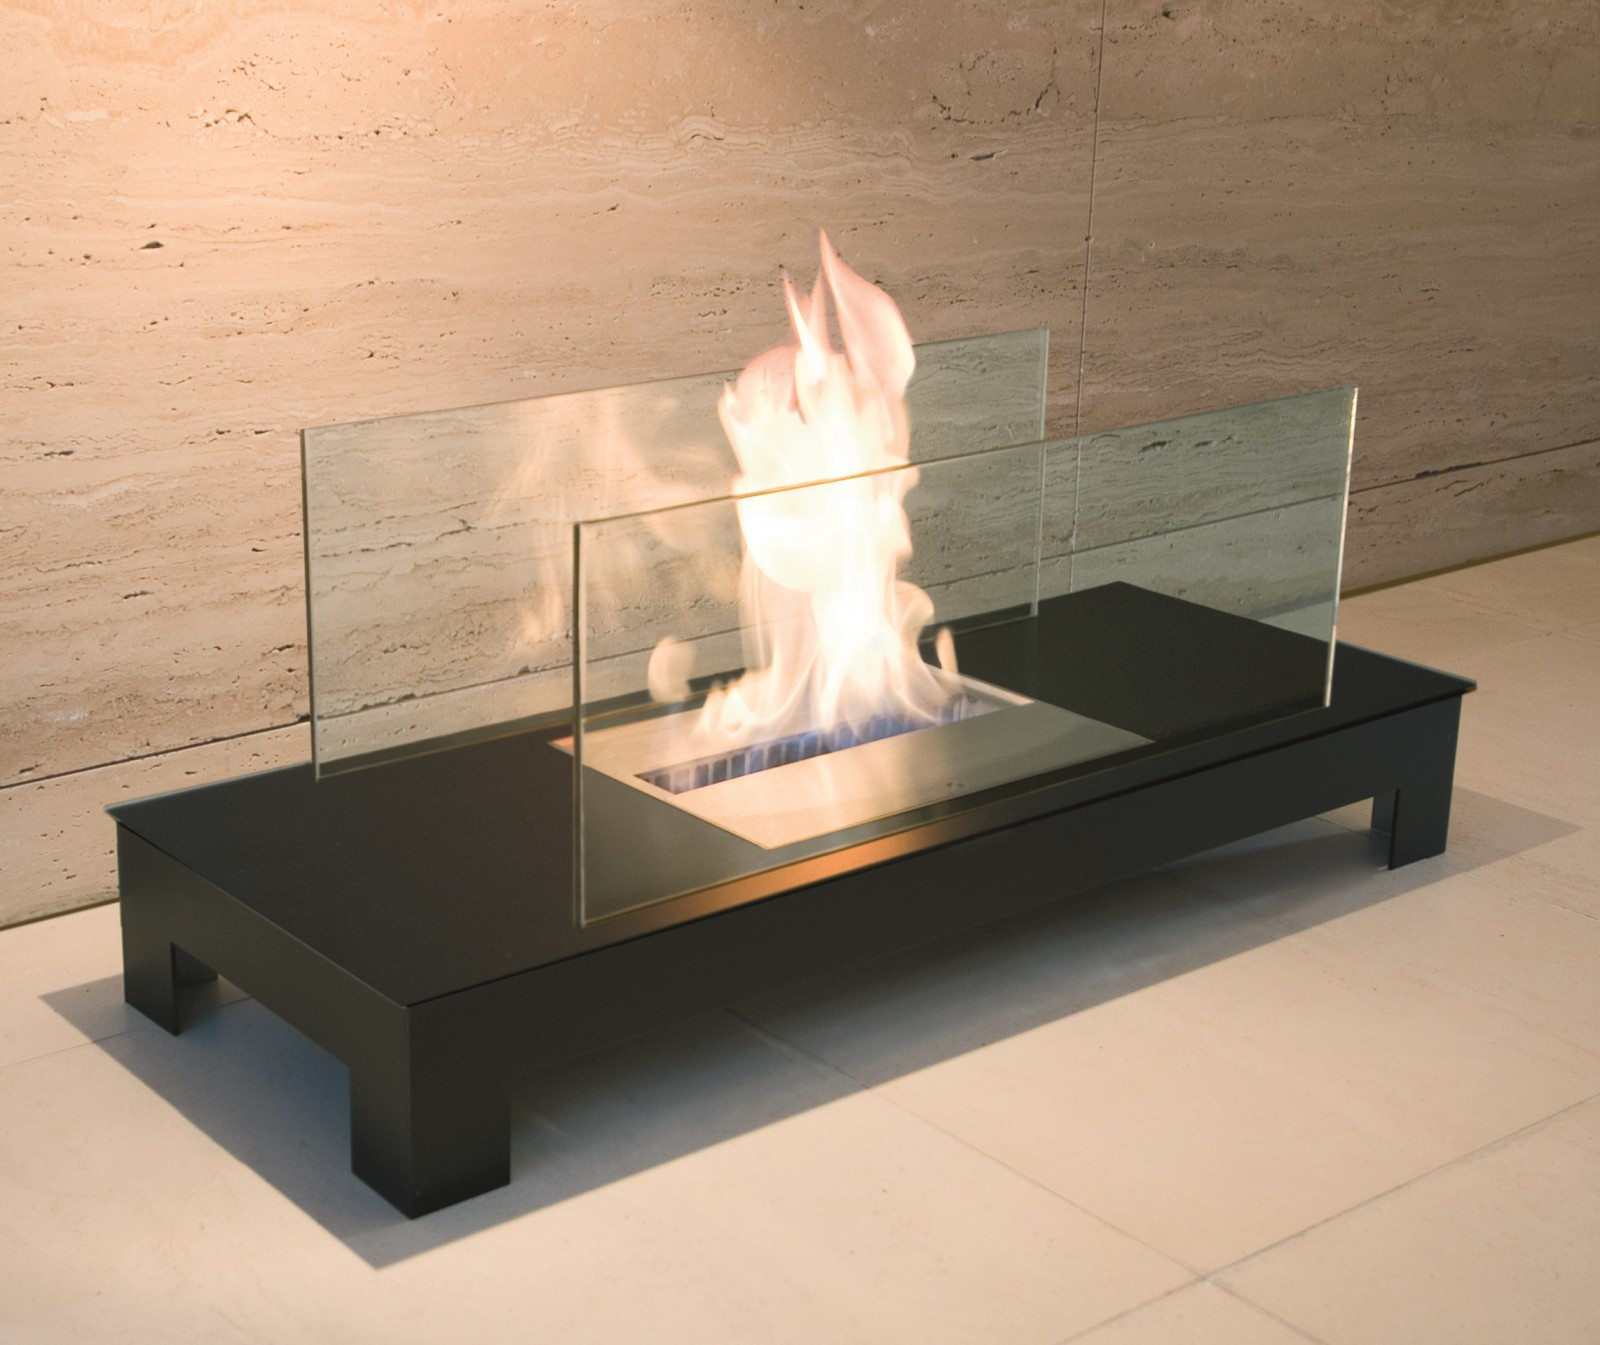 radius floor flame schwarz gelkamin kamin bio ethanol 537c wohnen sonstige wohnaccessoires. Black Bedroom Furniture Sets. Home Design Ideas